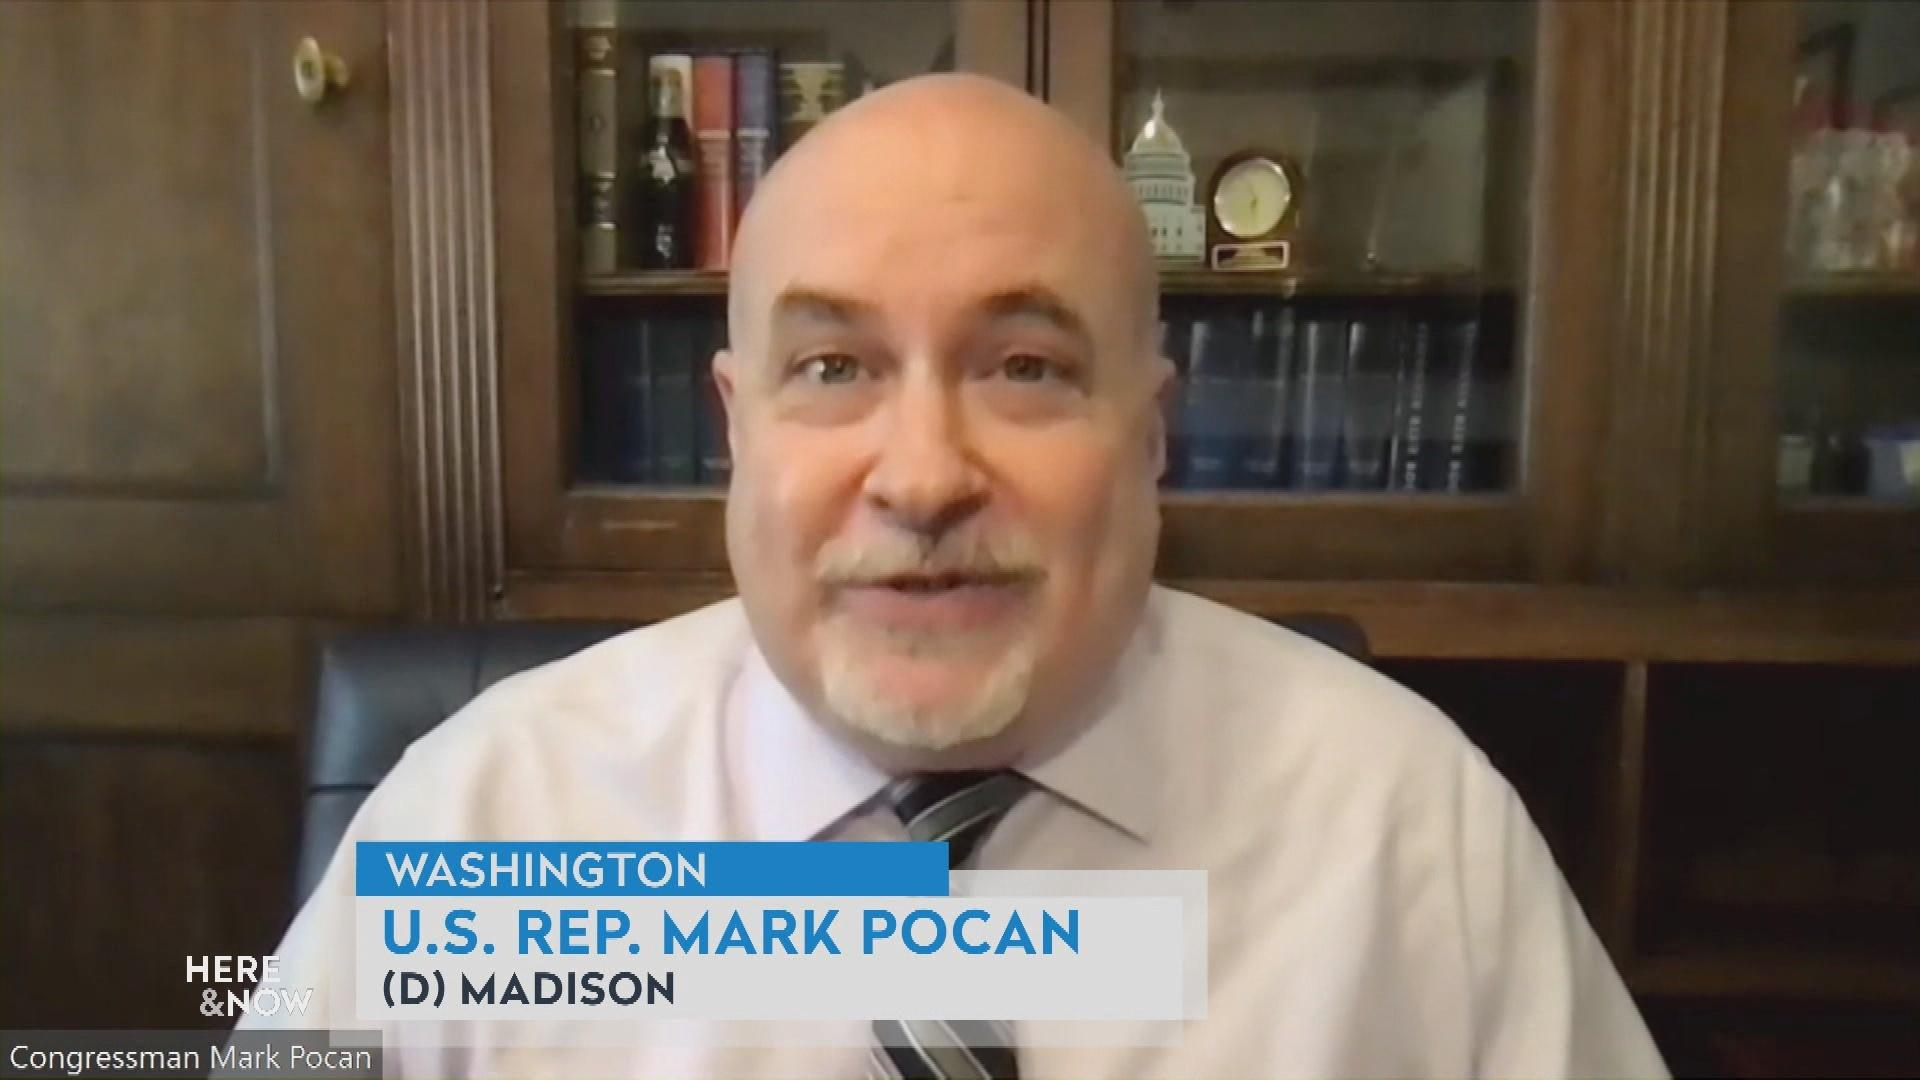 Republican Congresswoman Voted out of Leadership Position